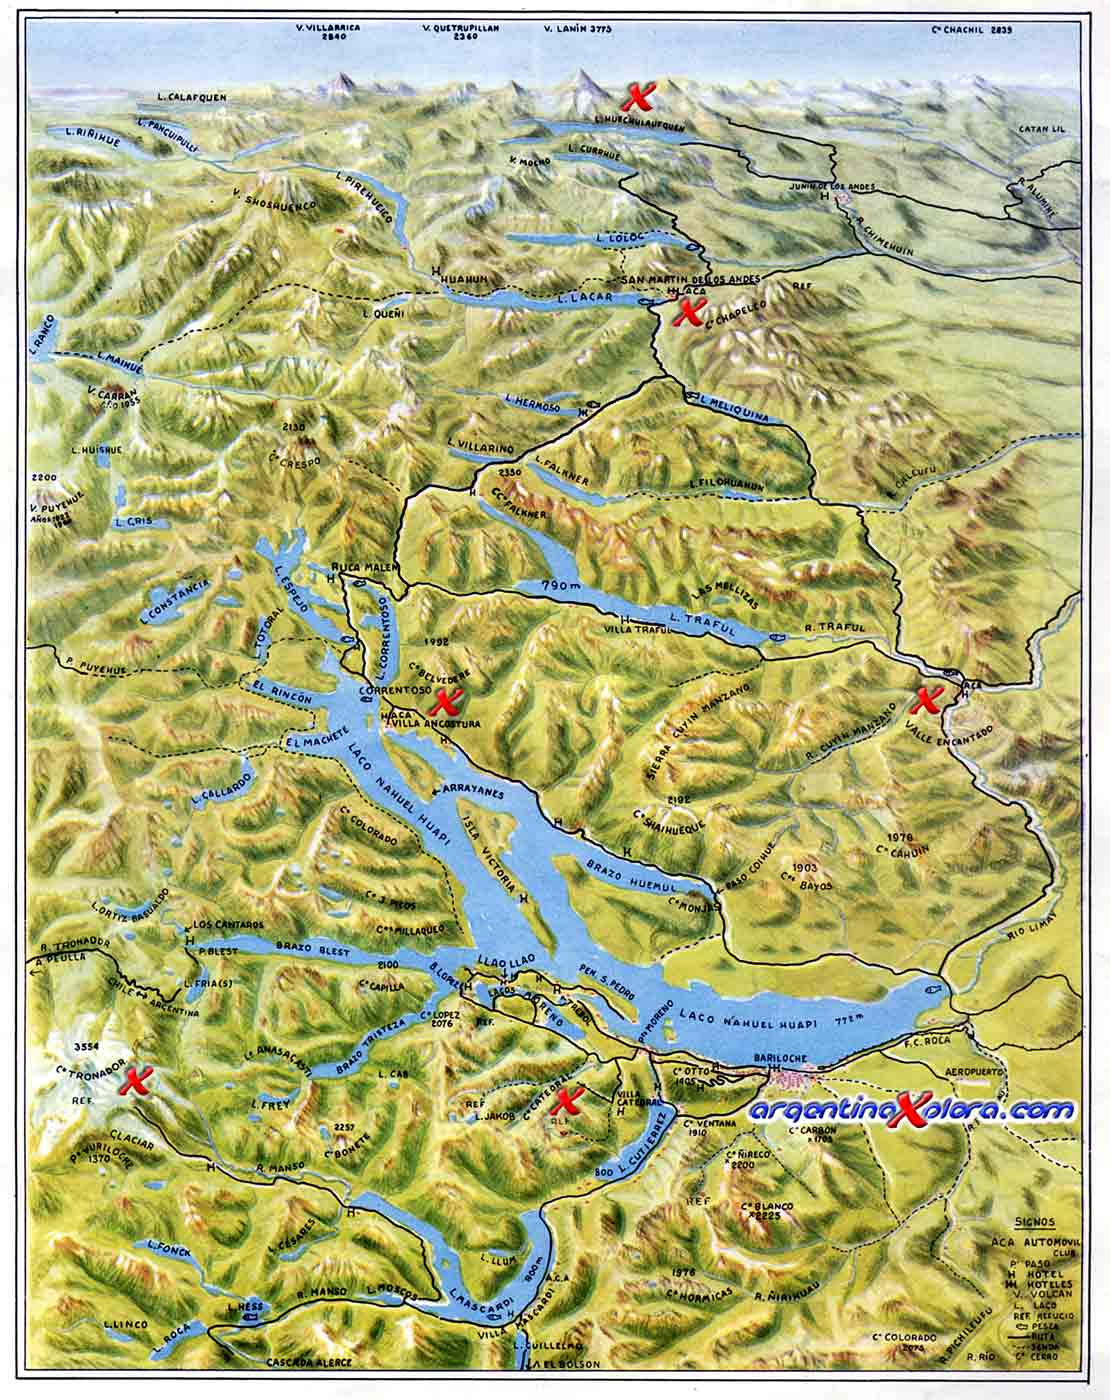 Map Of Bariloche Forest Andinopatagónicos Mounts And Lakes Of - Argentina map bariloche